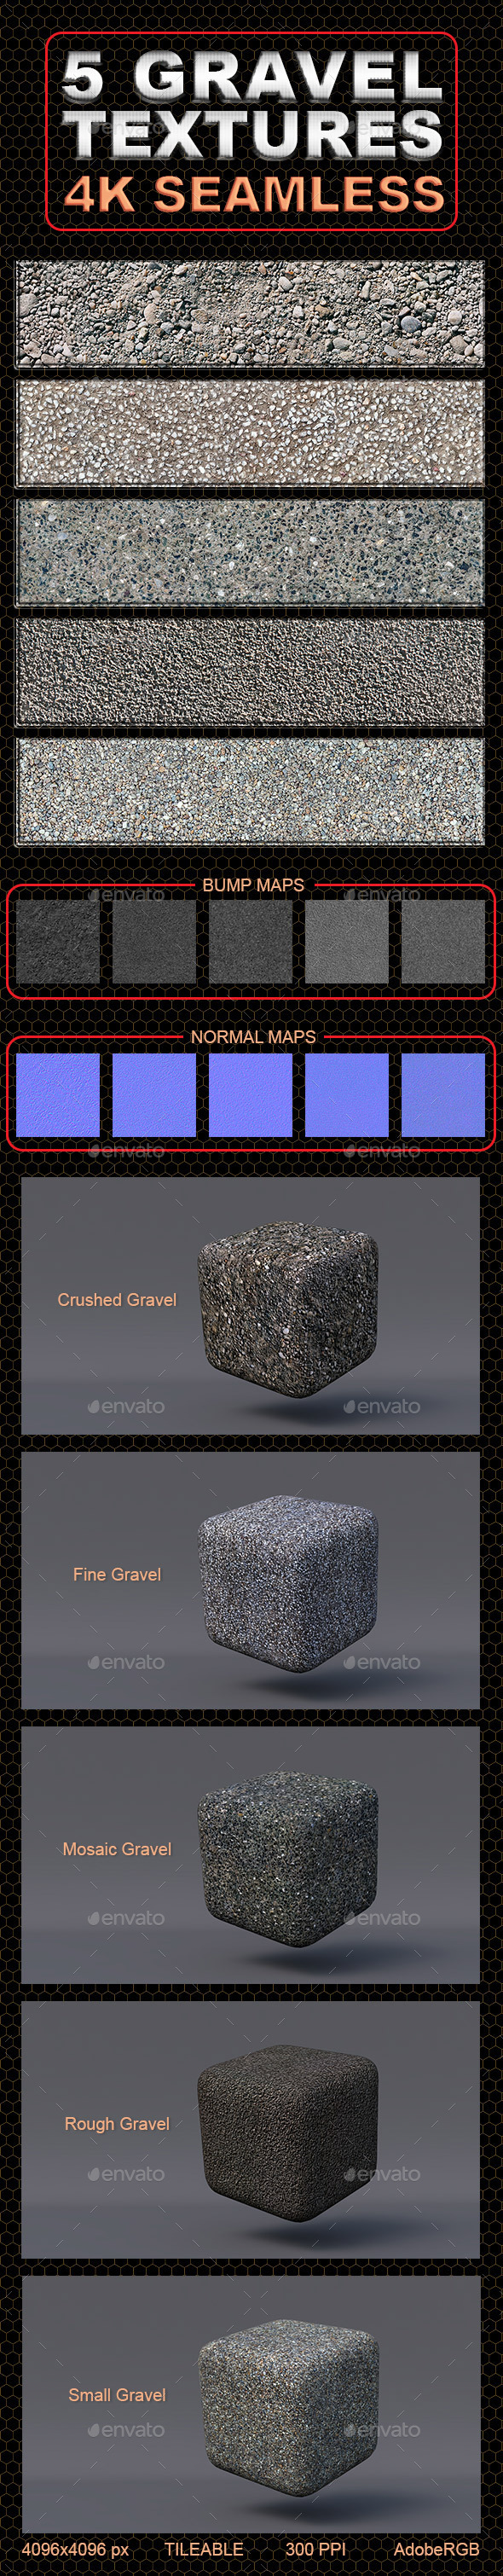 5 Gravel Textures -4K- Seamless - 3DOcean Item for Sale